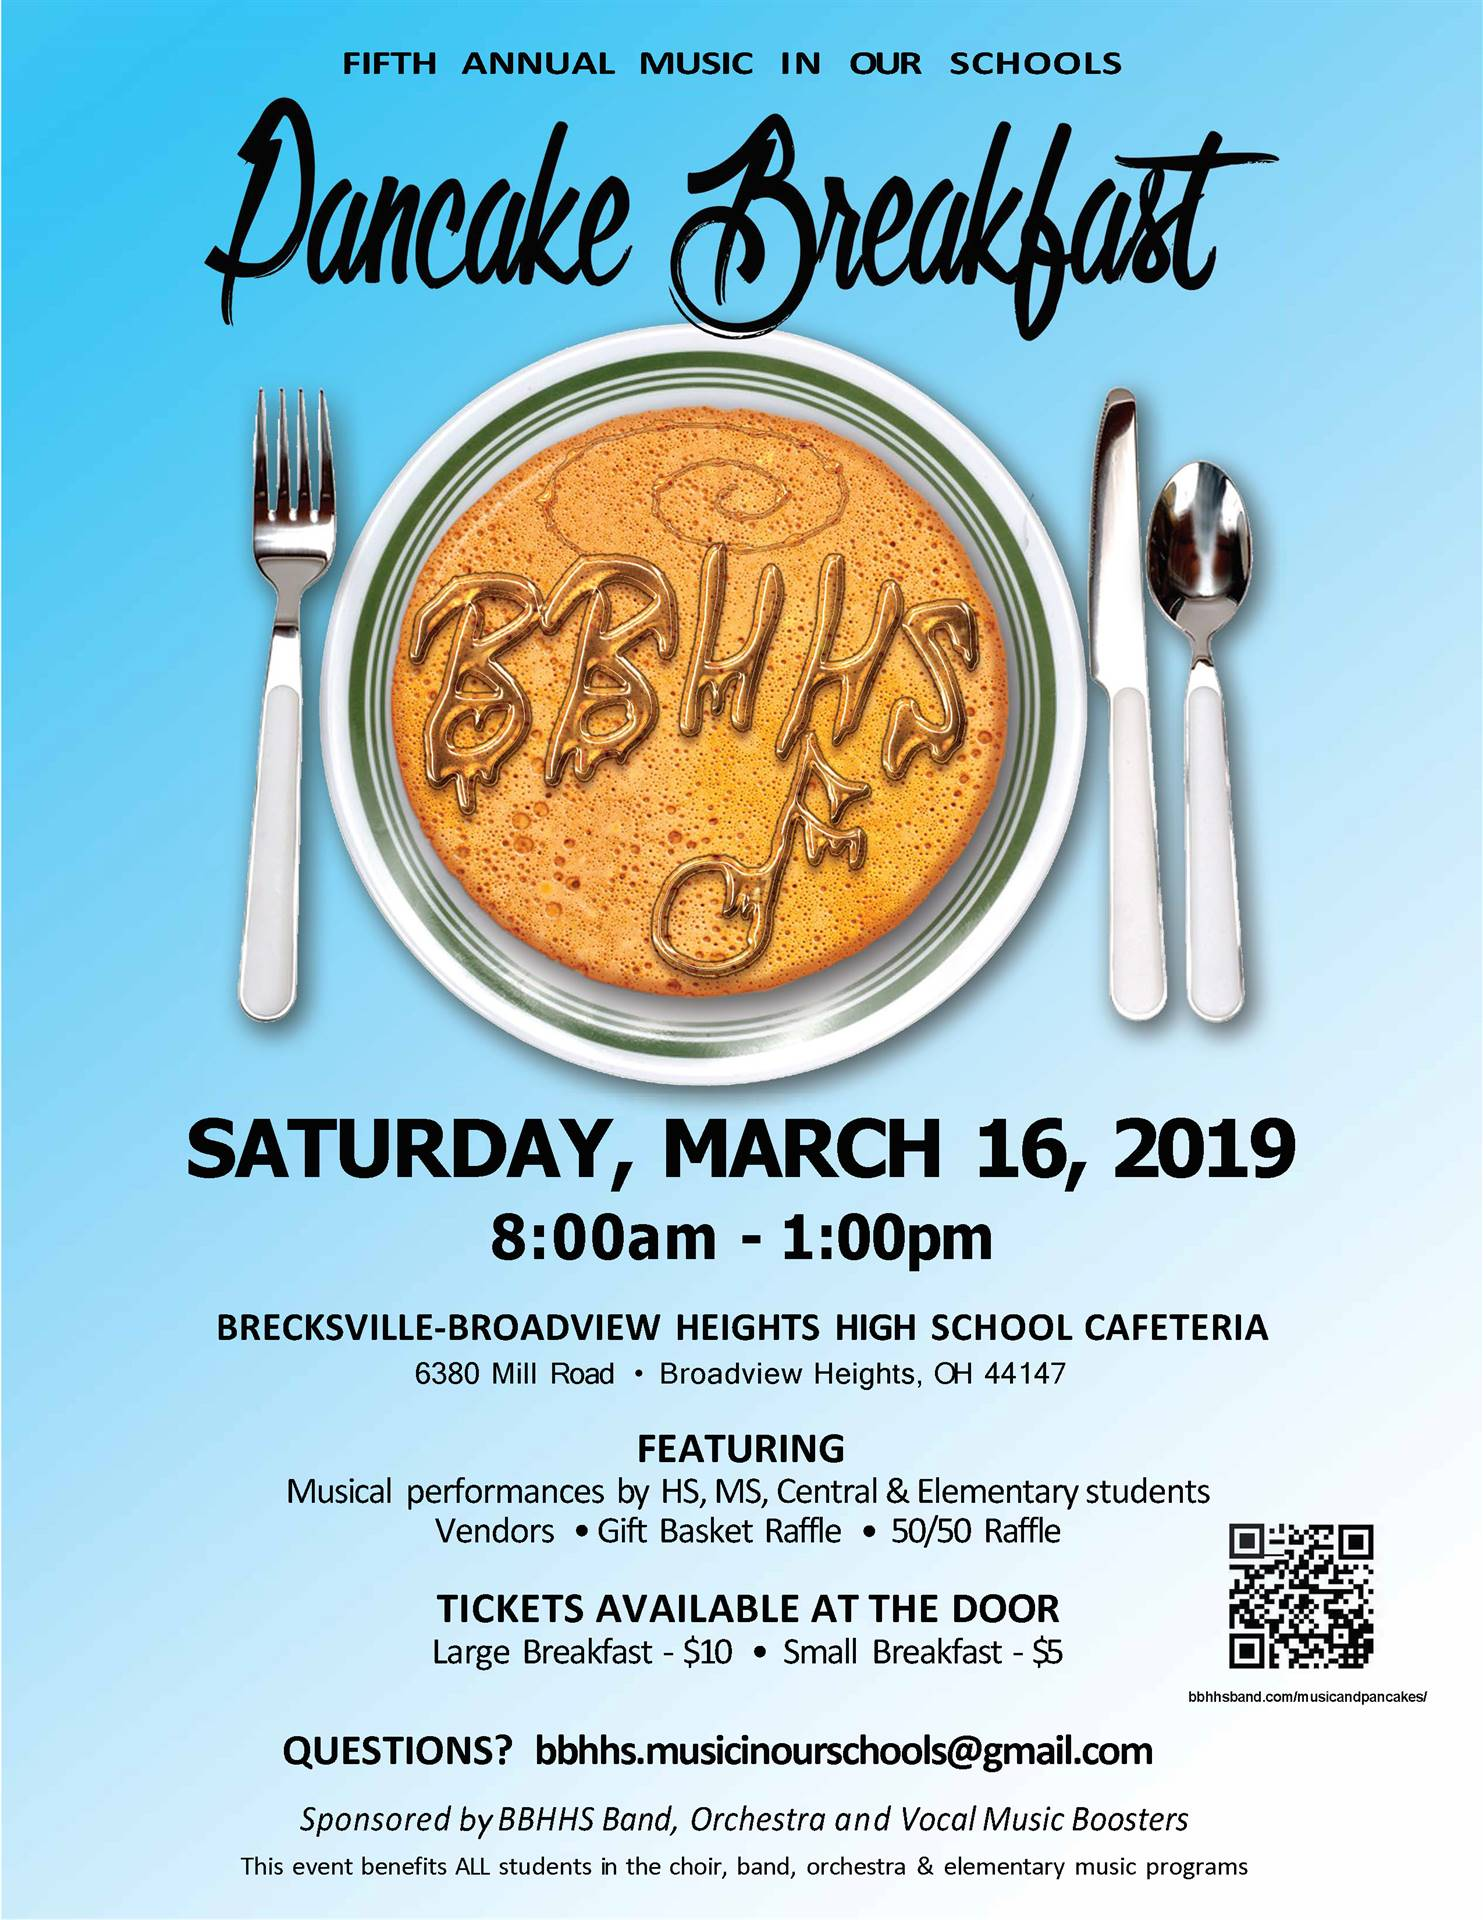 Pancake Breakfast coming on March 16th 8-1